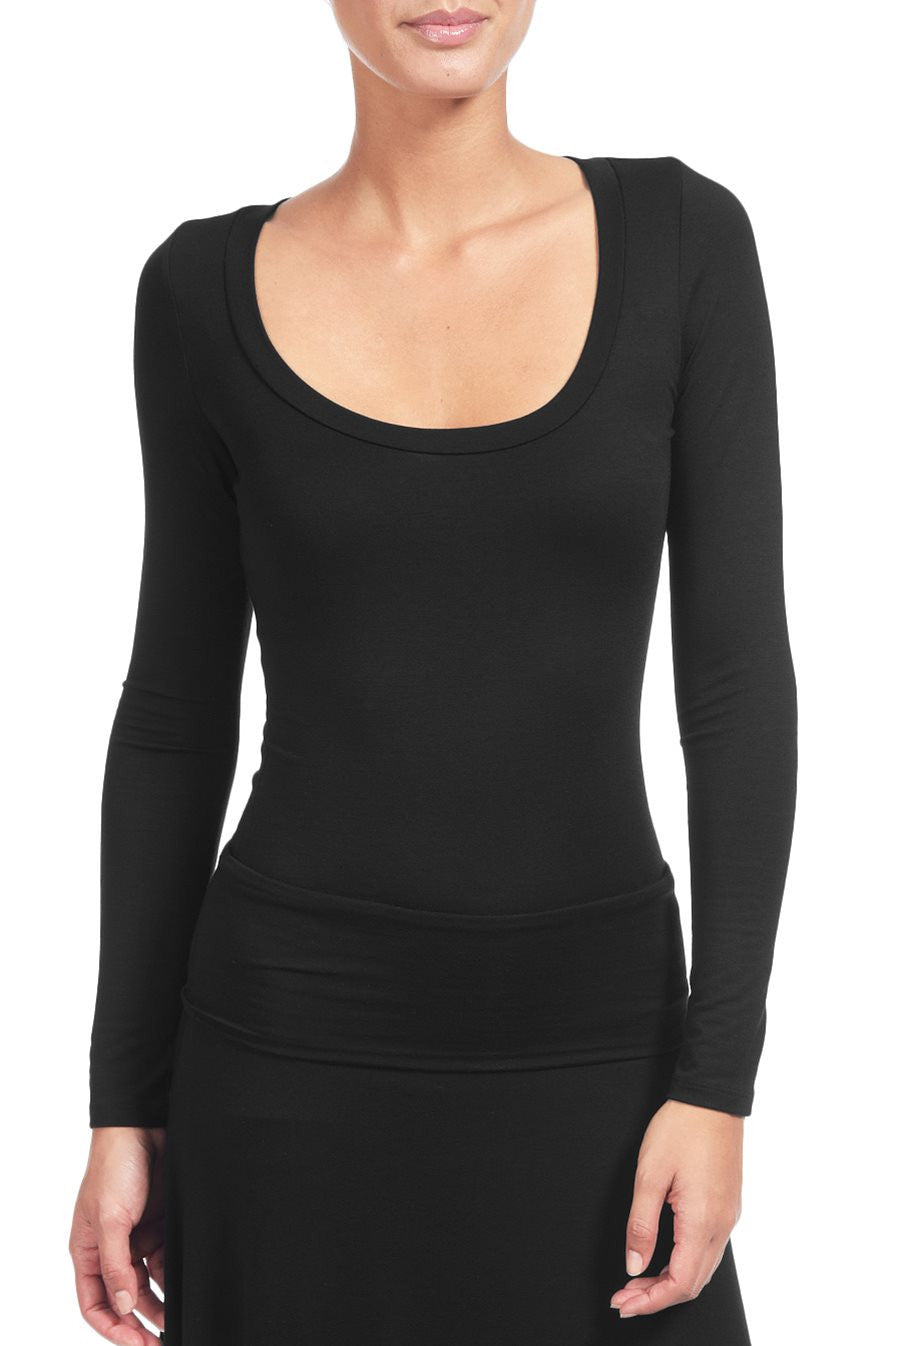 DESI LONG SLEEVE TOP - BLACK